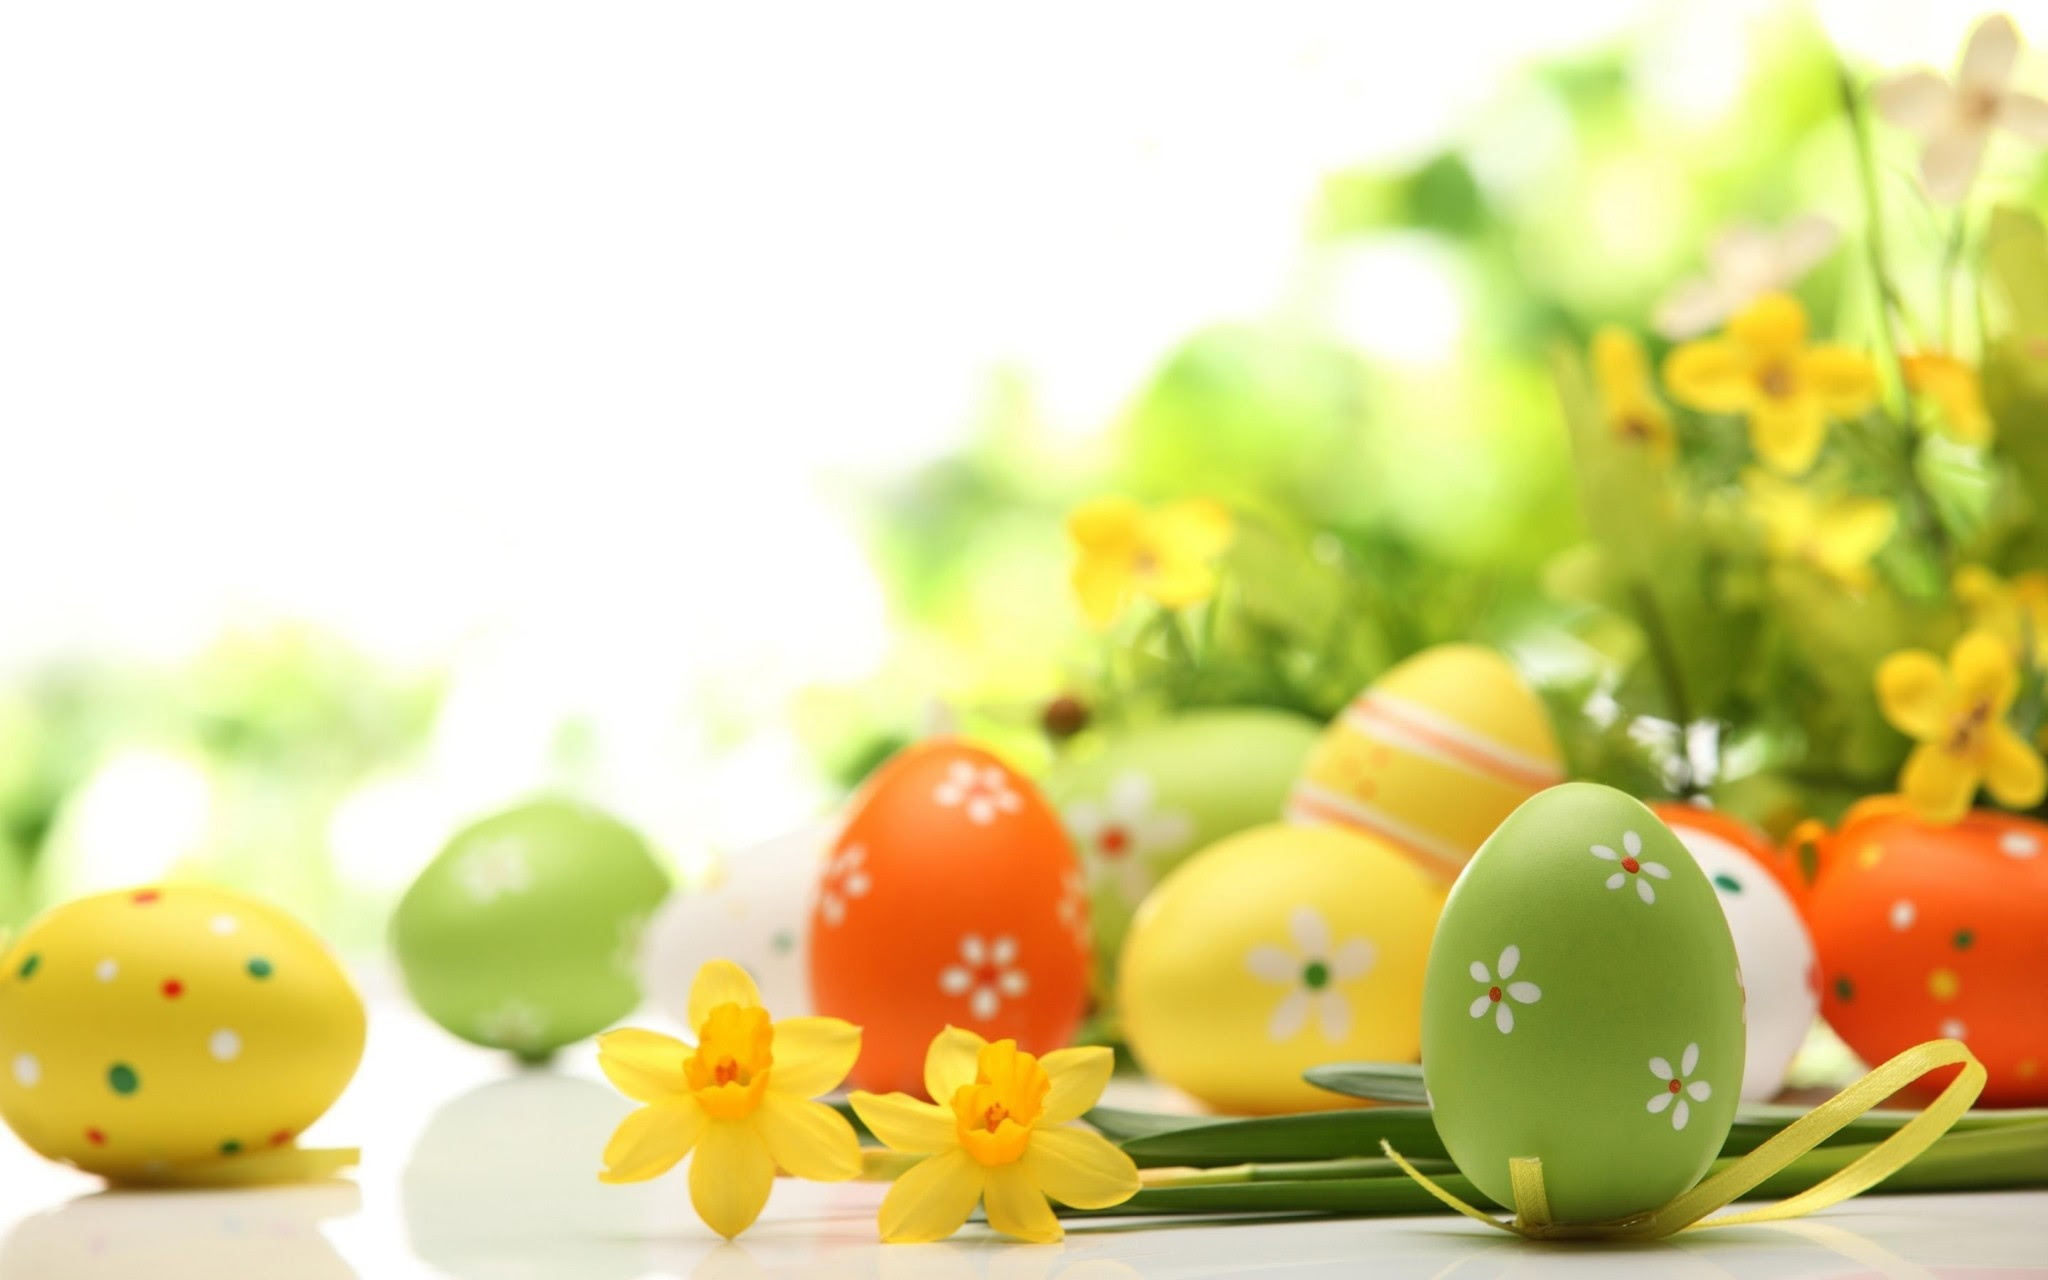 Easter Wallpaper For Computer 69 Images